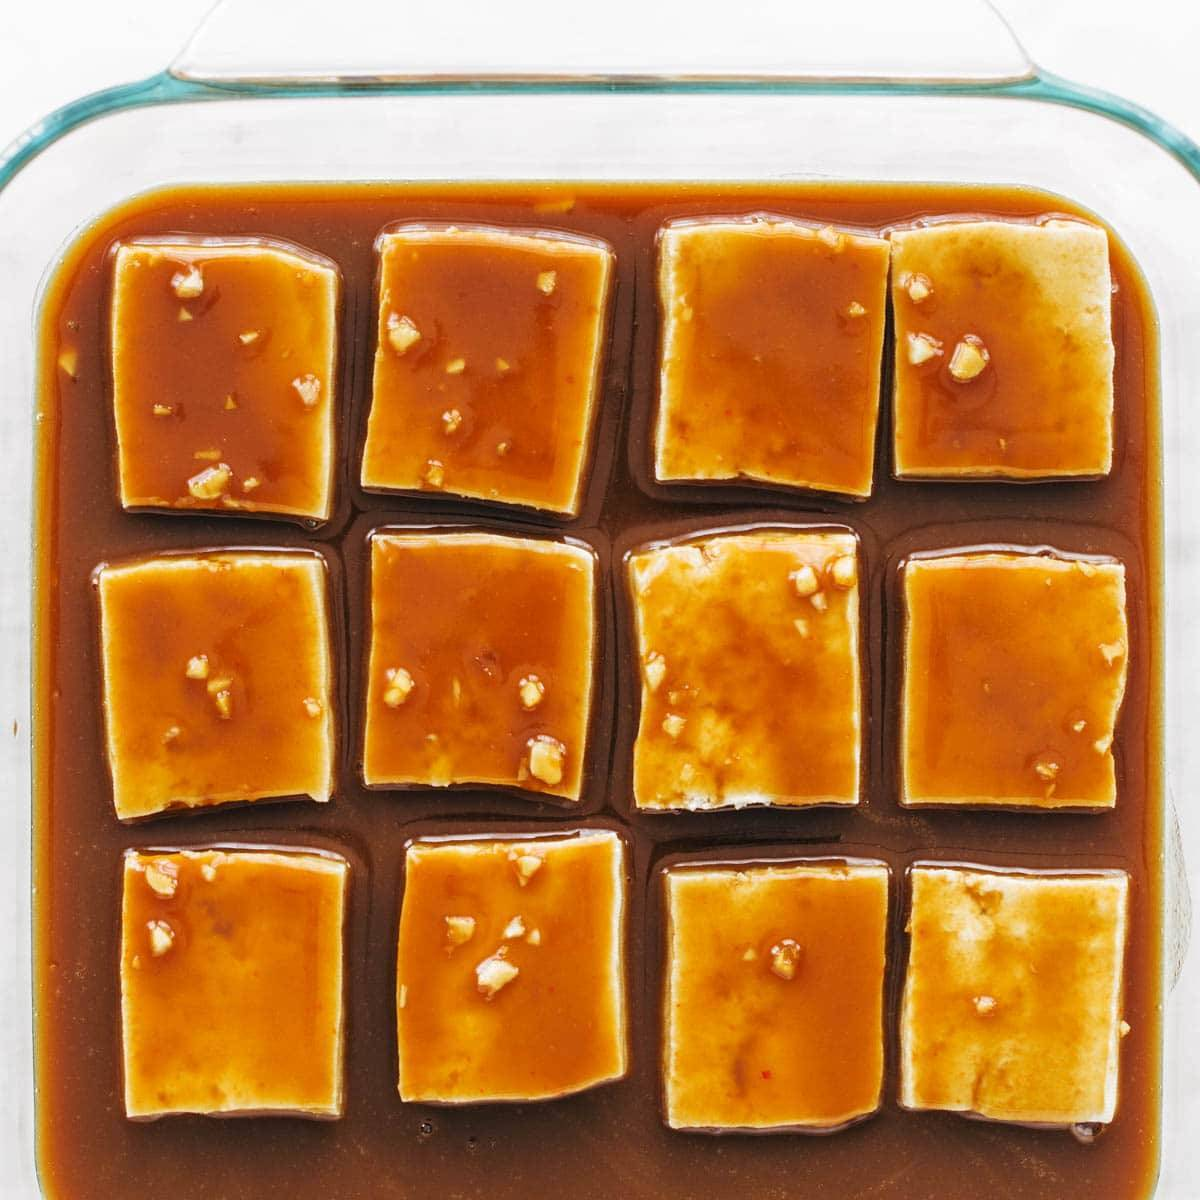 Tofu in baking pan with sauce.